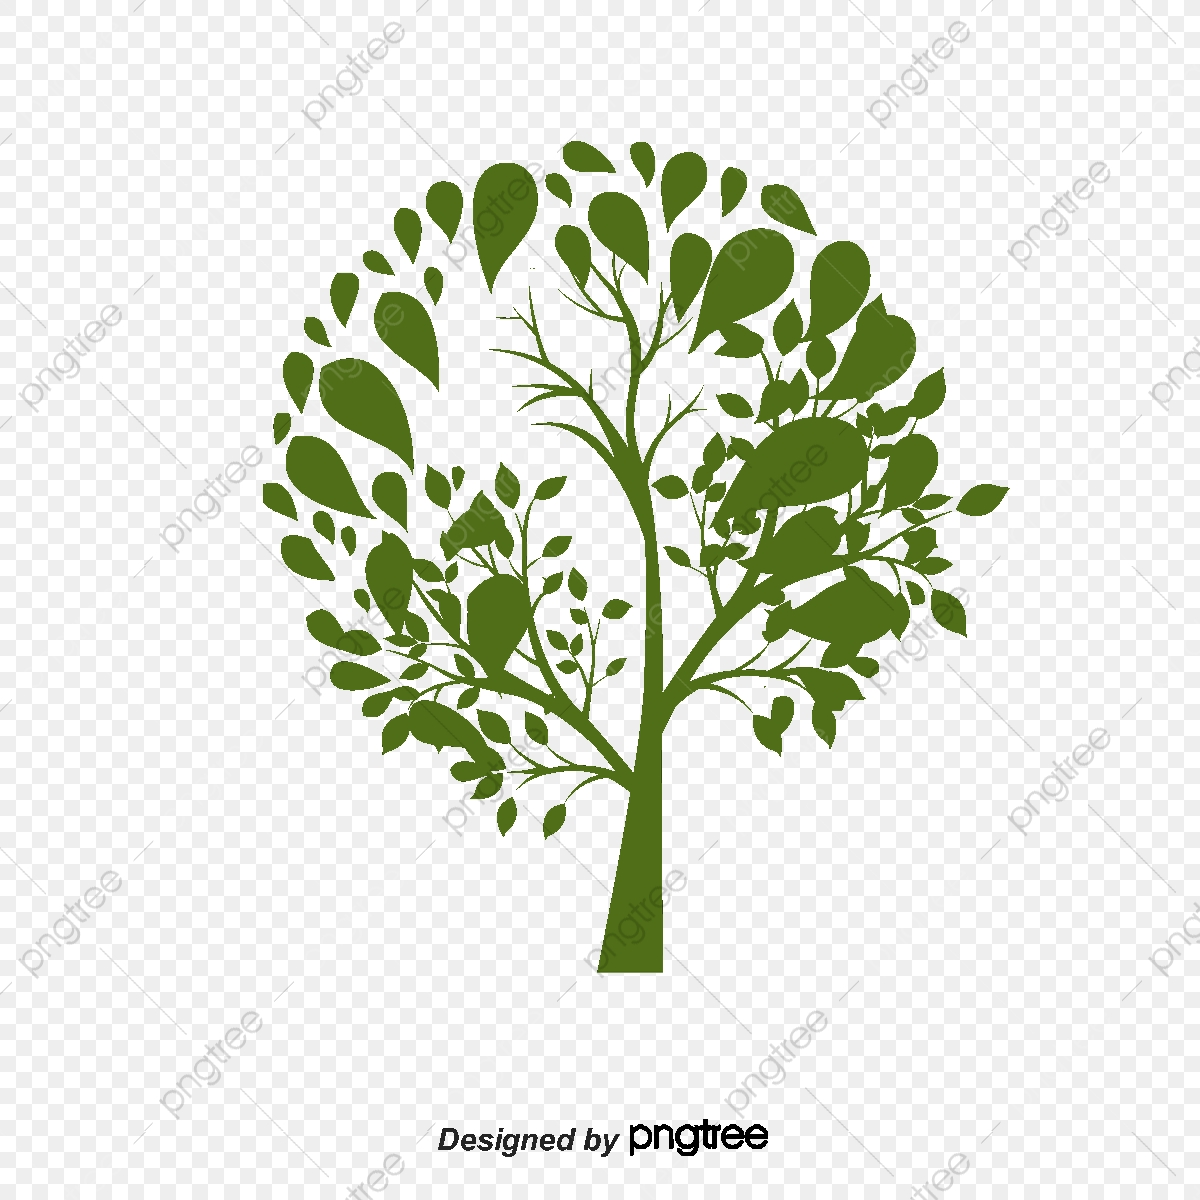 Cartoon Tree Cartoon Vector Tree Vector Tree Clipart Png Transparent Clipart Image And Psd File For Free Download To get more templates about posters,flyers,brochures,card,mockup,logo,video,sound,ppt,word,please visit pikbest.com. https pngtree com freepng cartoon tree 1896354 html